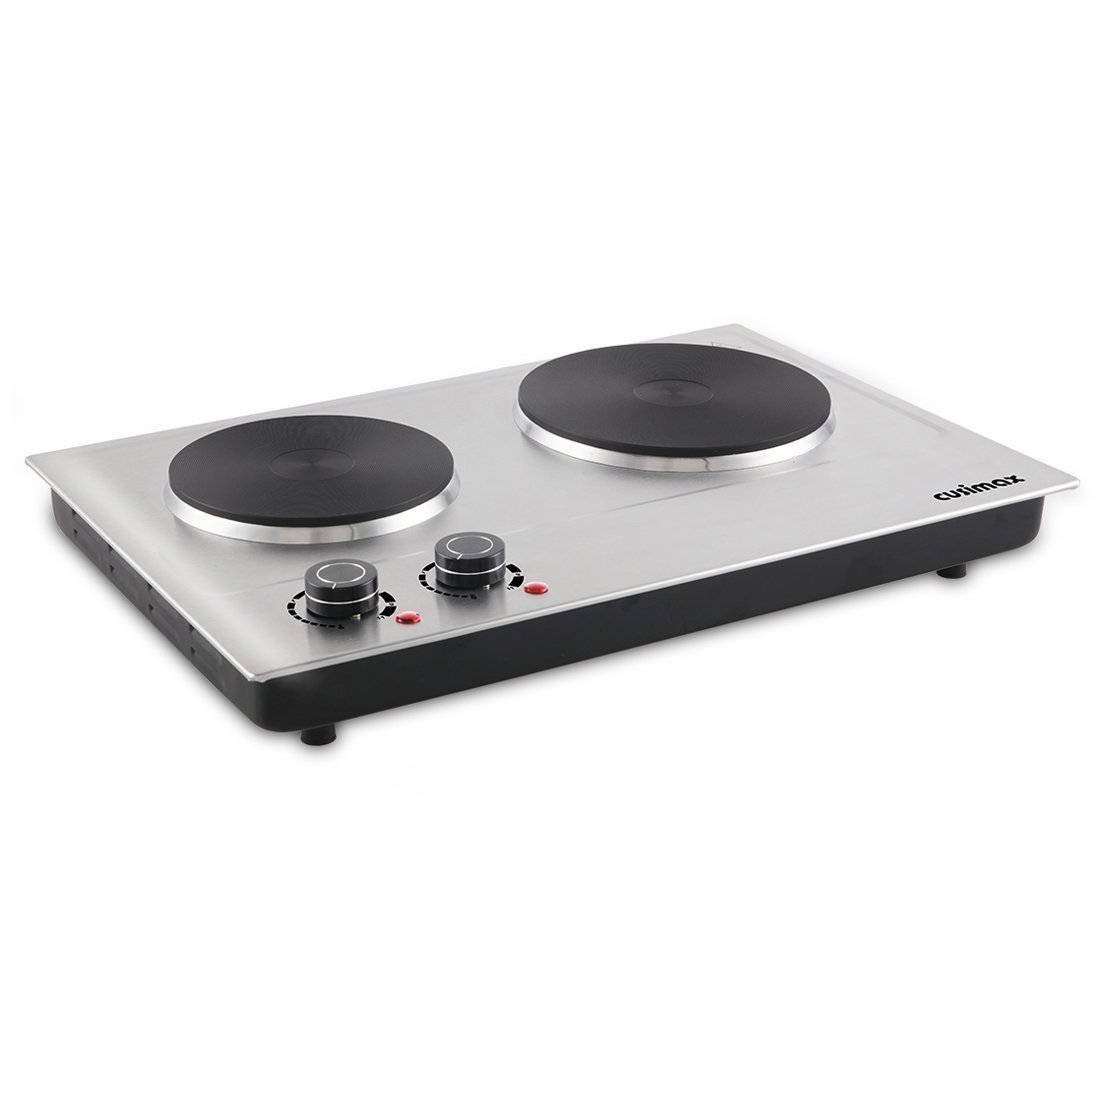 Cusimax CMHP-C180 Dual Electric Hot Plate - Portable Countertop Burner - 1800W - Stainless Steel